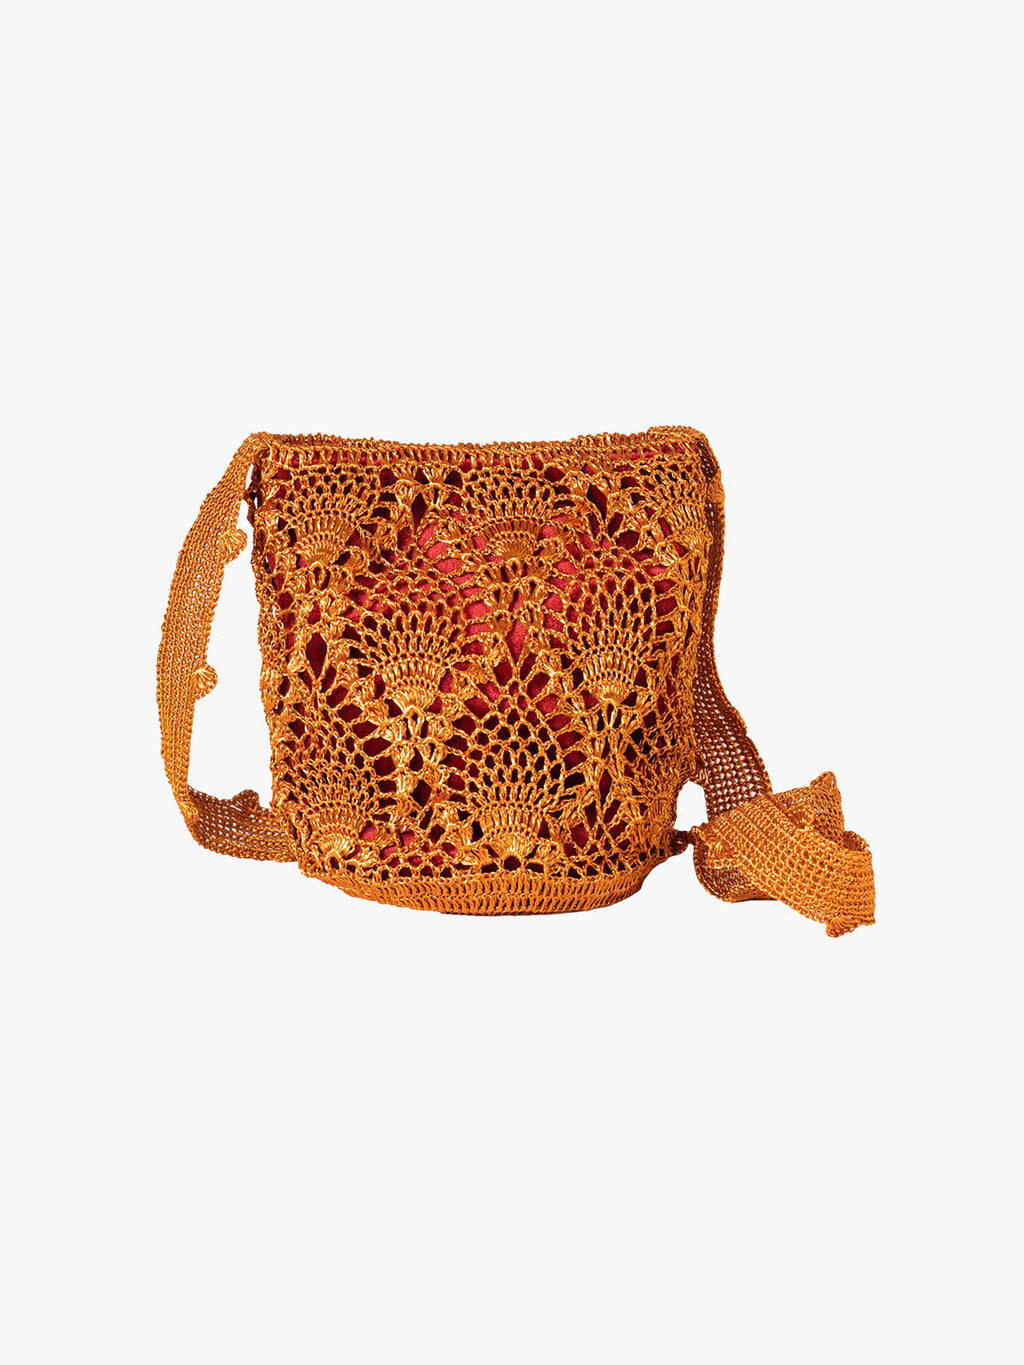 Pineapple Weave Mochila | Copper & Wine